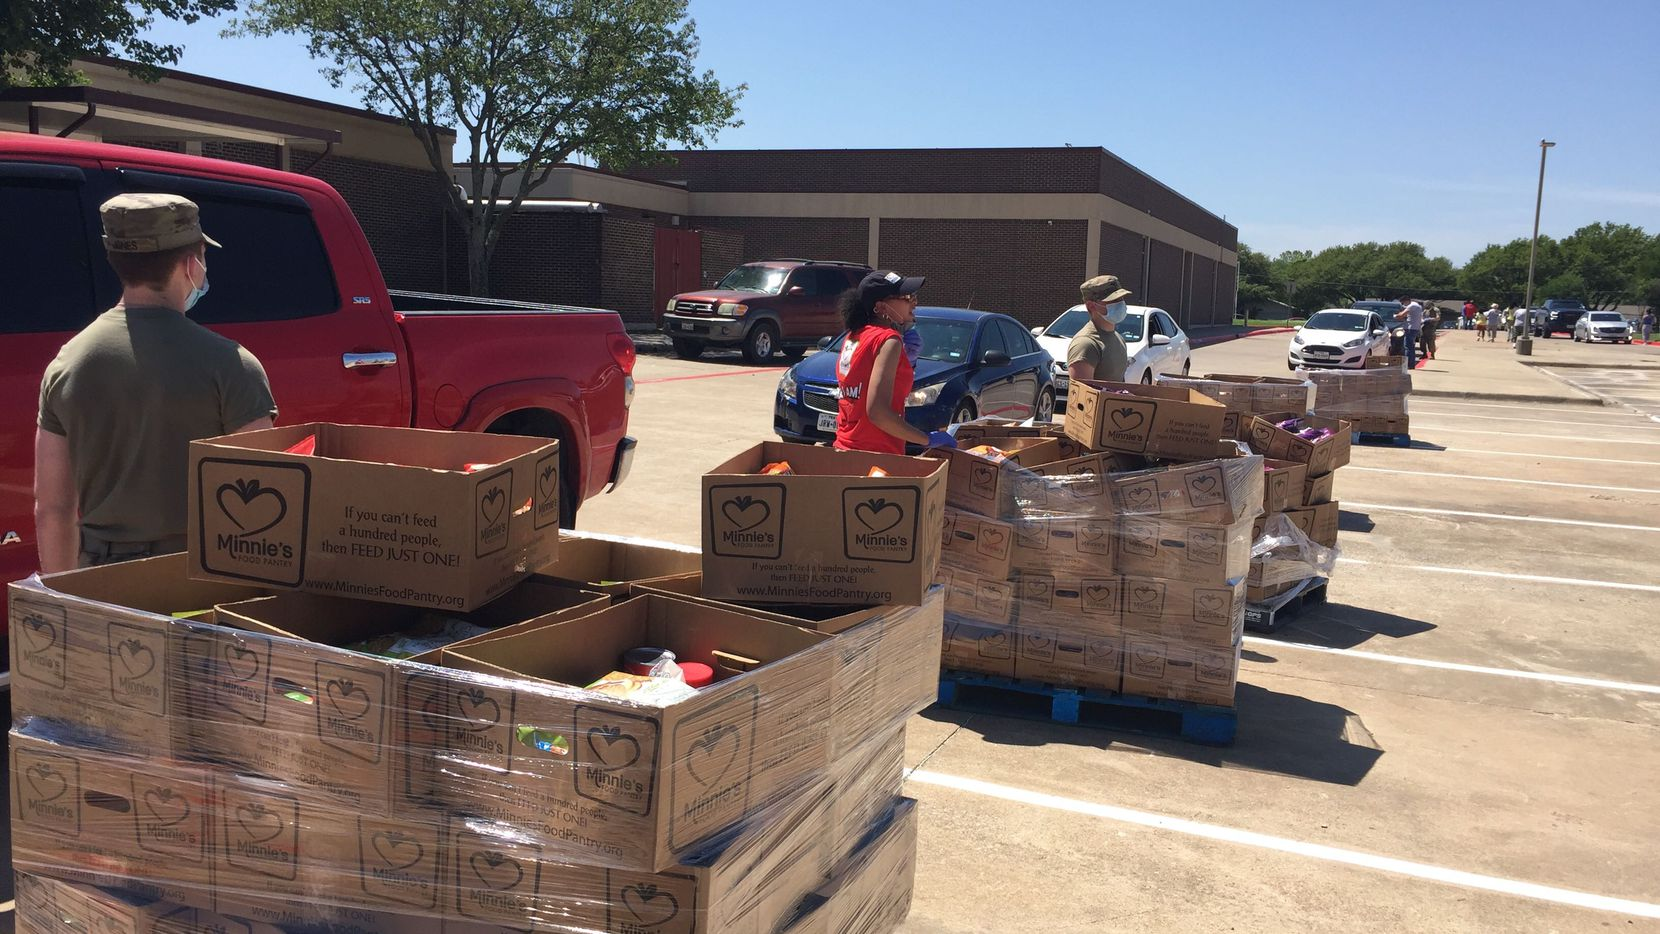 Minnie s Food Pantry, a Plano nonprofit, distributed more than 750 boxes of food for Easter weekend at Bowman Middle School in Plano on April 8, 2020.